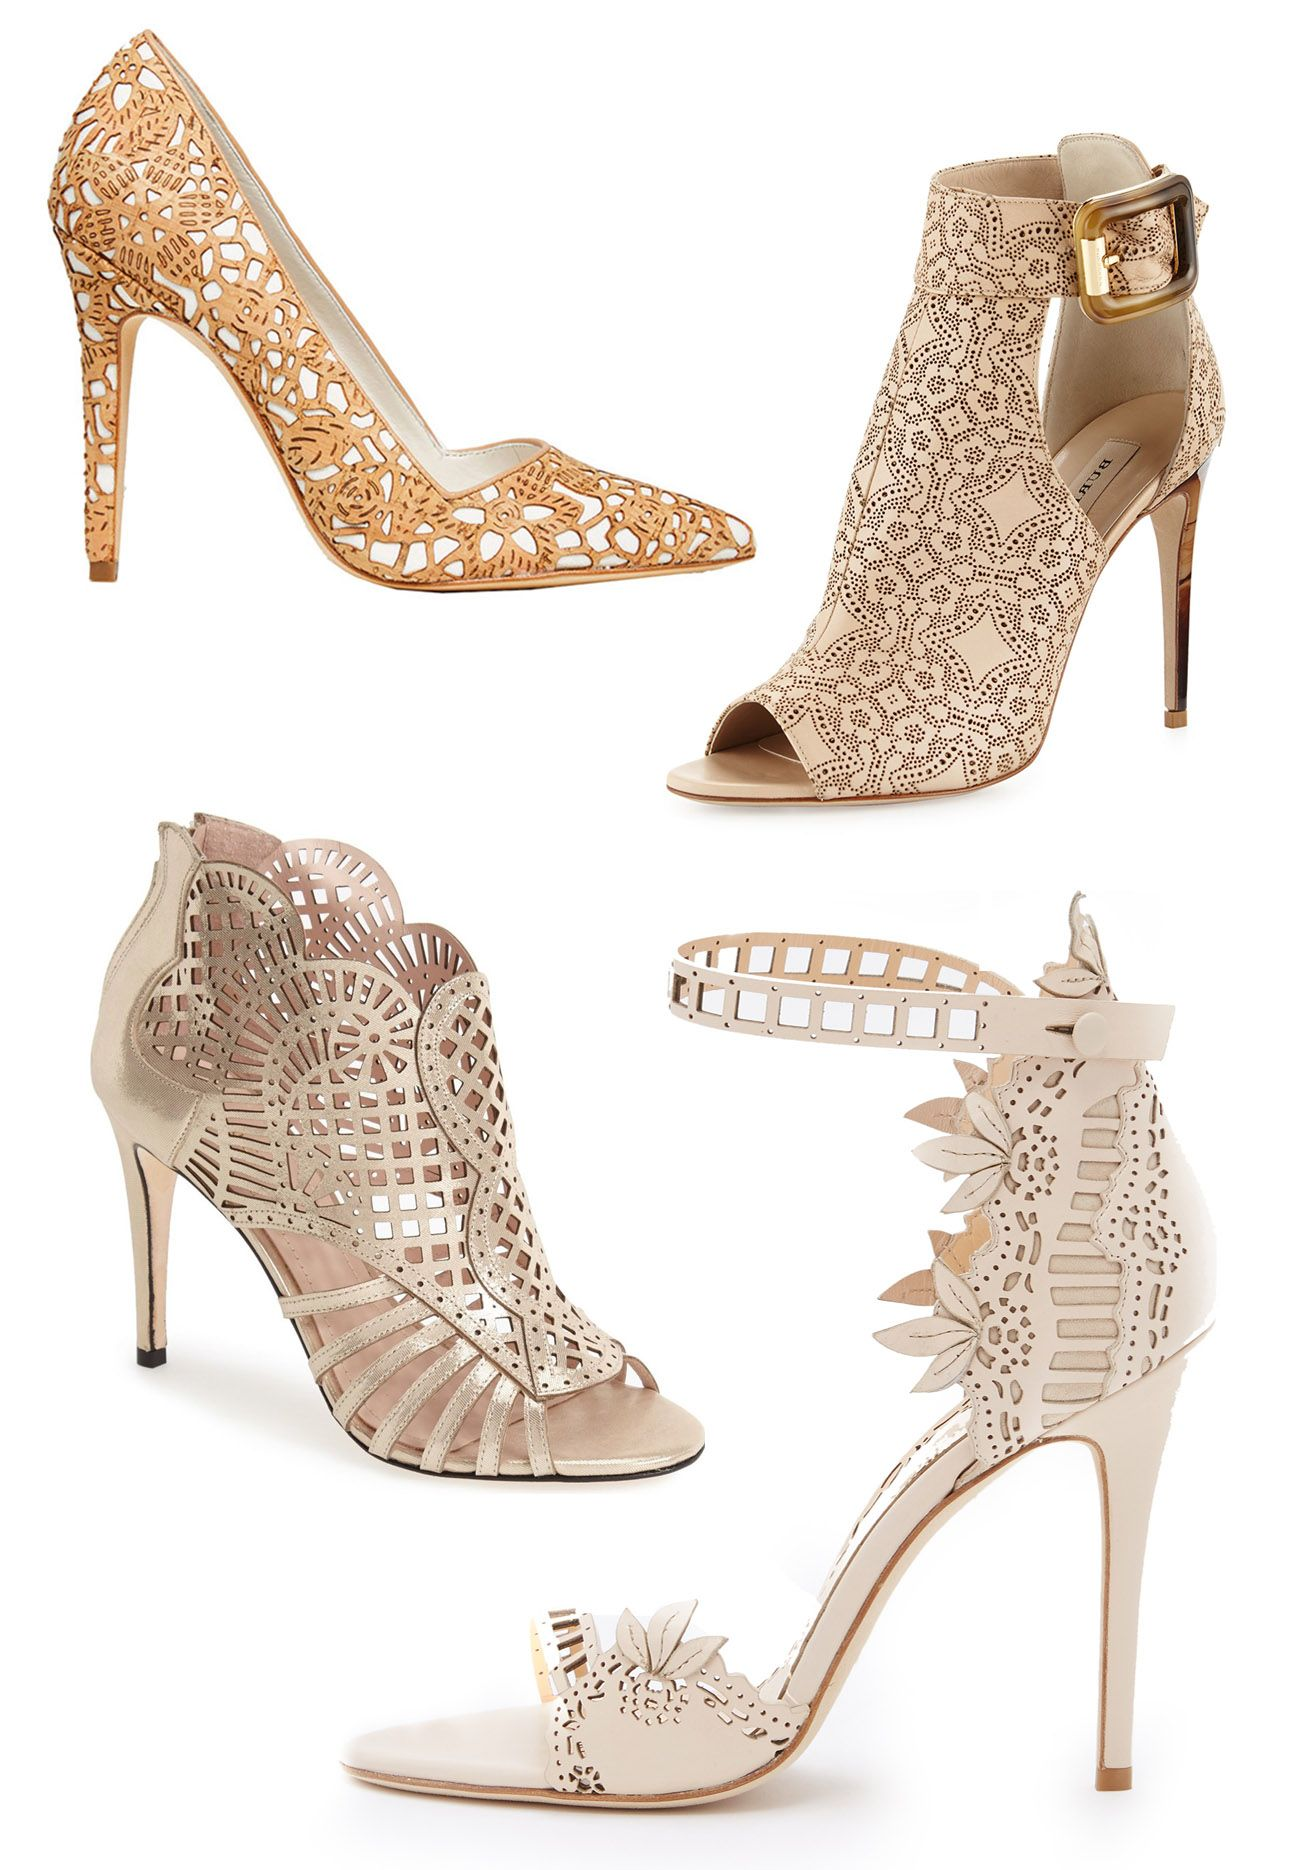 ... Wedding Shoes. Our favorite heels with laser cut details 3d8243f6f1b4